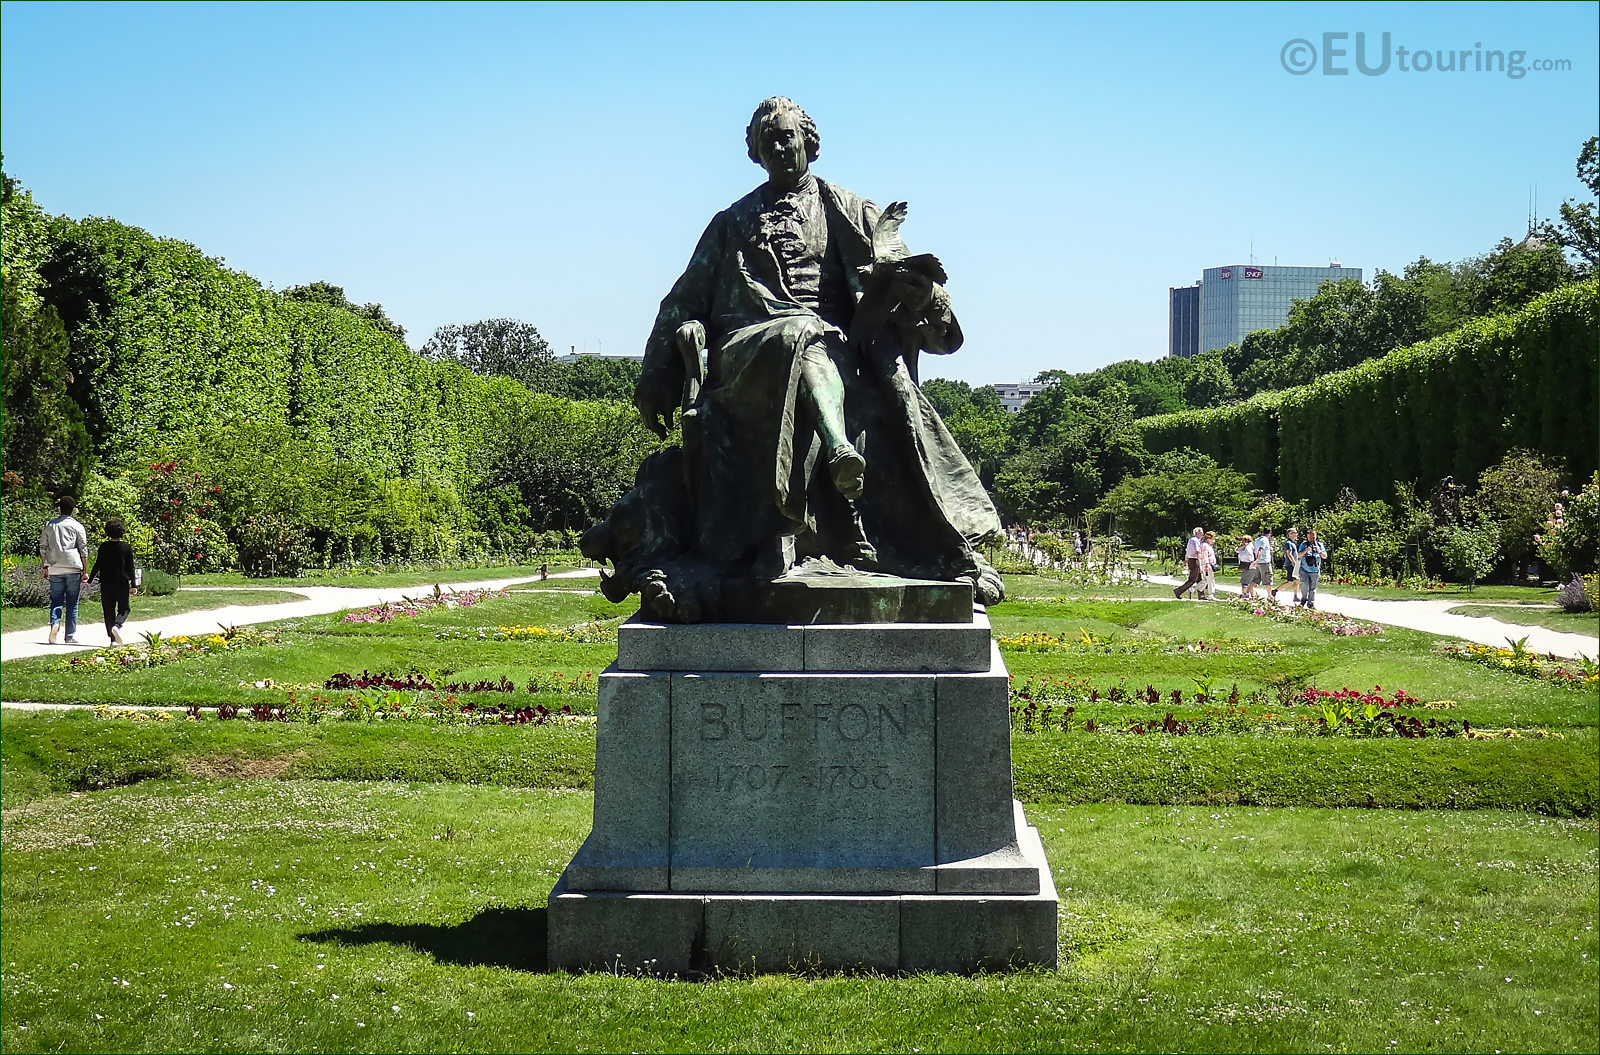 photos of comte de buffon statue in jardin des plantes paris page 137. Black Bedroom Furniture Sets. Home Design Ideas